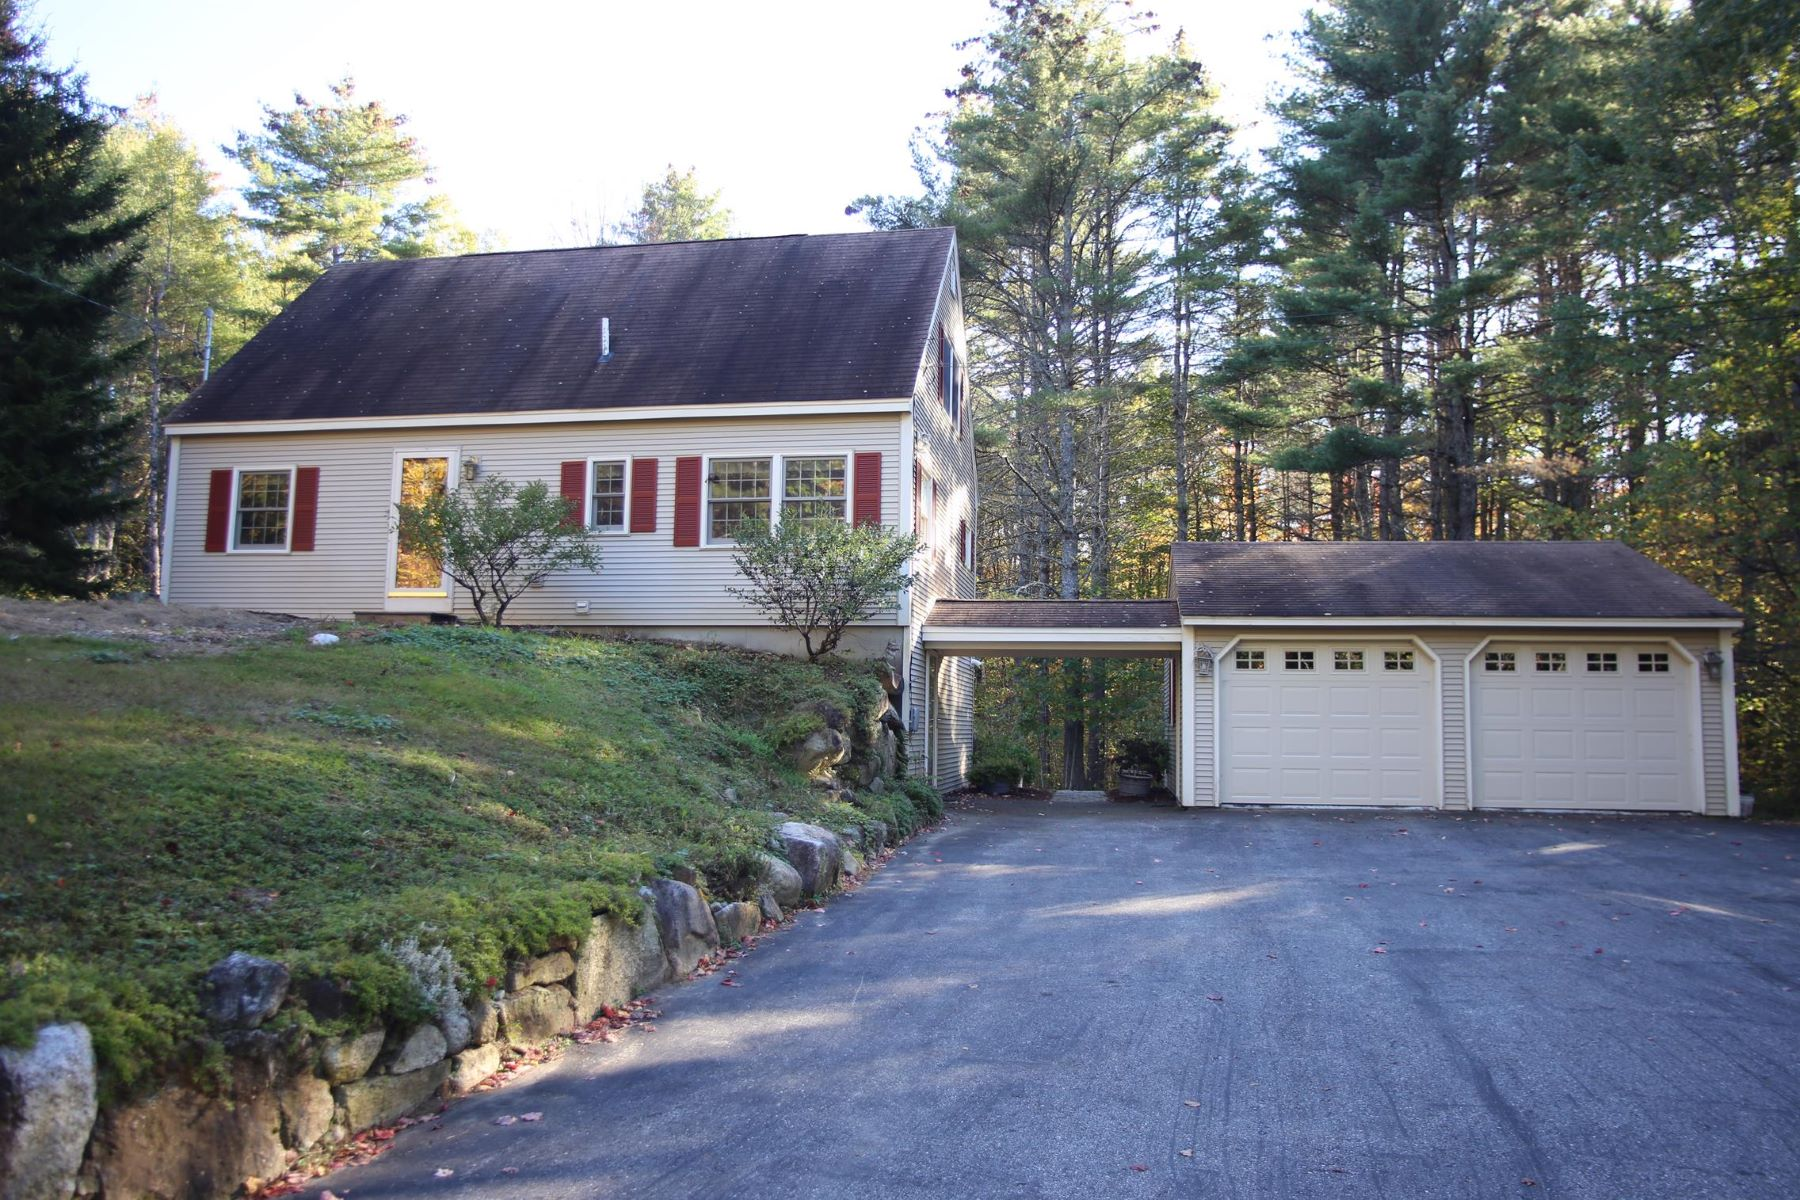 Single Family Home for Sale at Nice Cape with Brook Frontage 46 Kearsarge Mountain, Wilmot, New Hampshire, 03287 United States